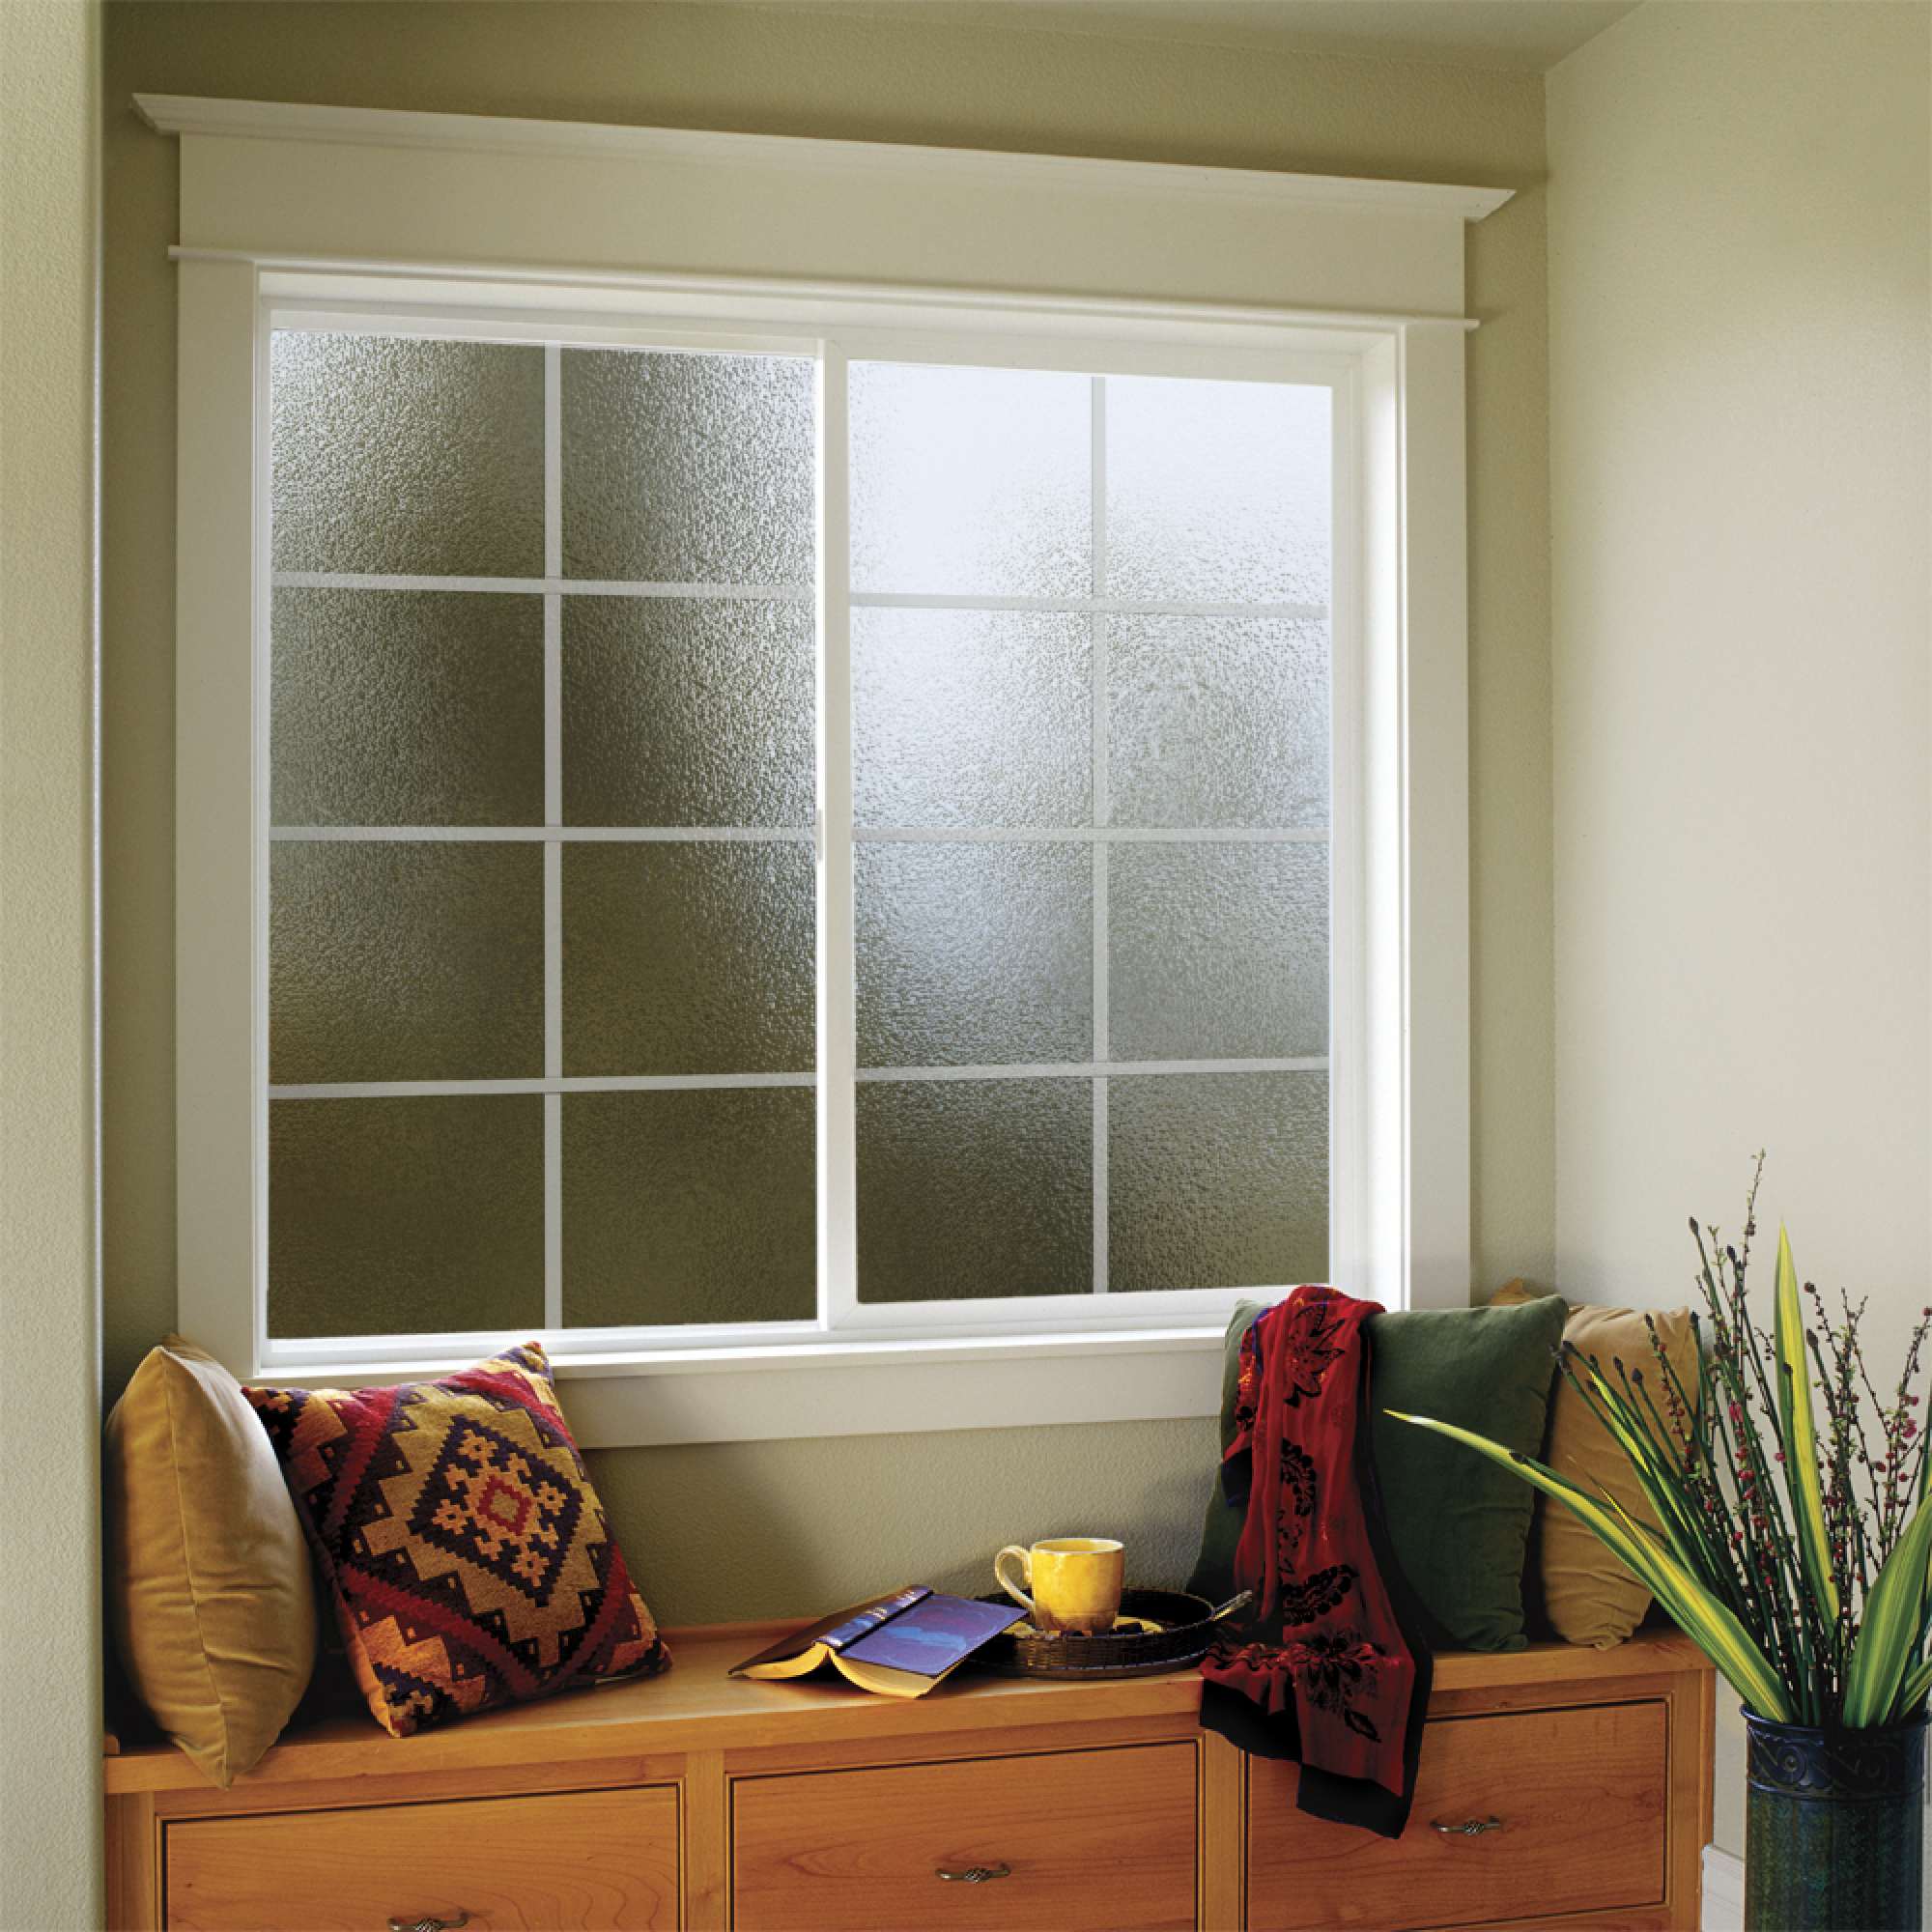 Premium aluminum sliding window jeld wen windows doors options buycottarizona Image collections